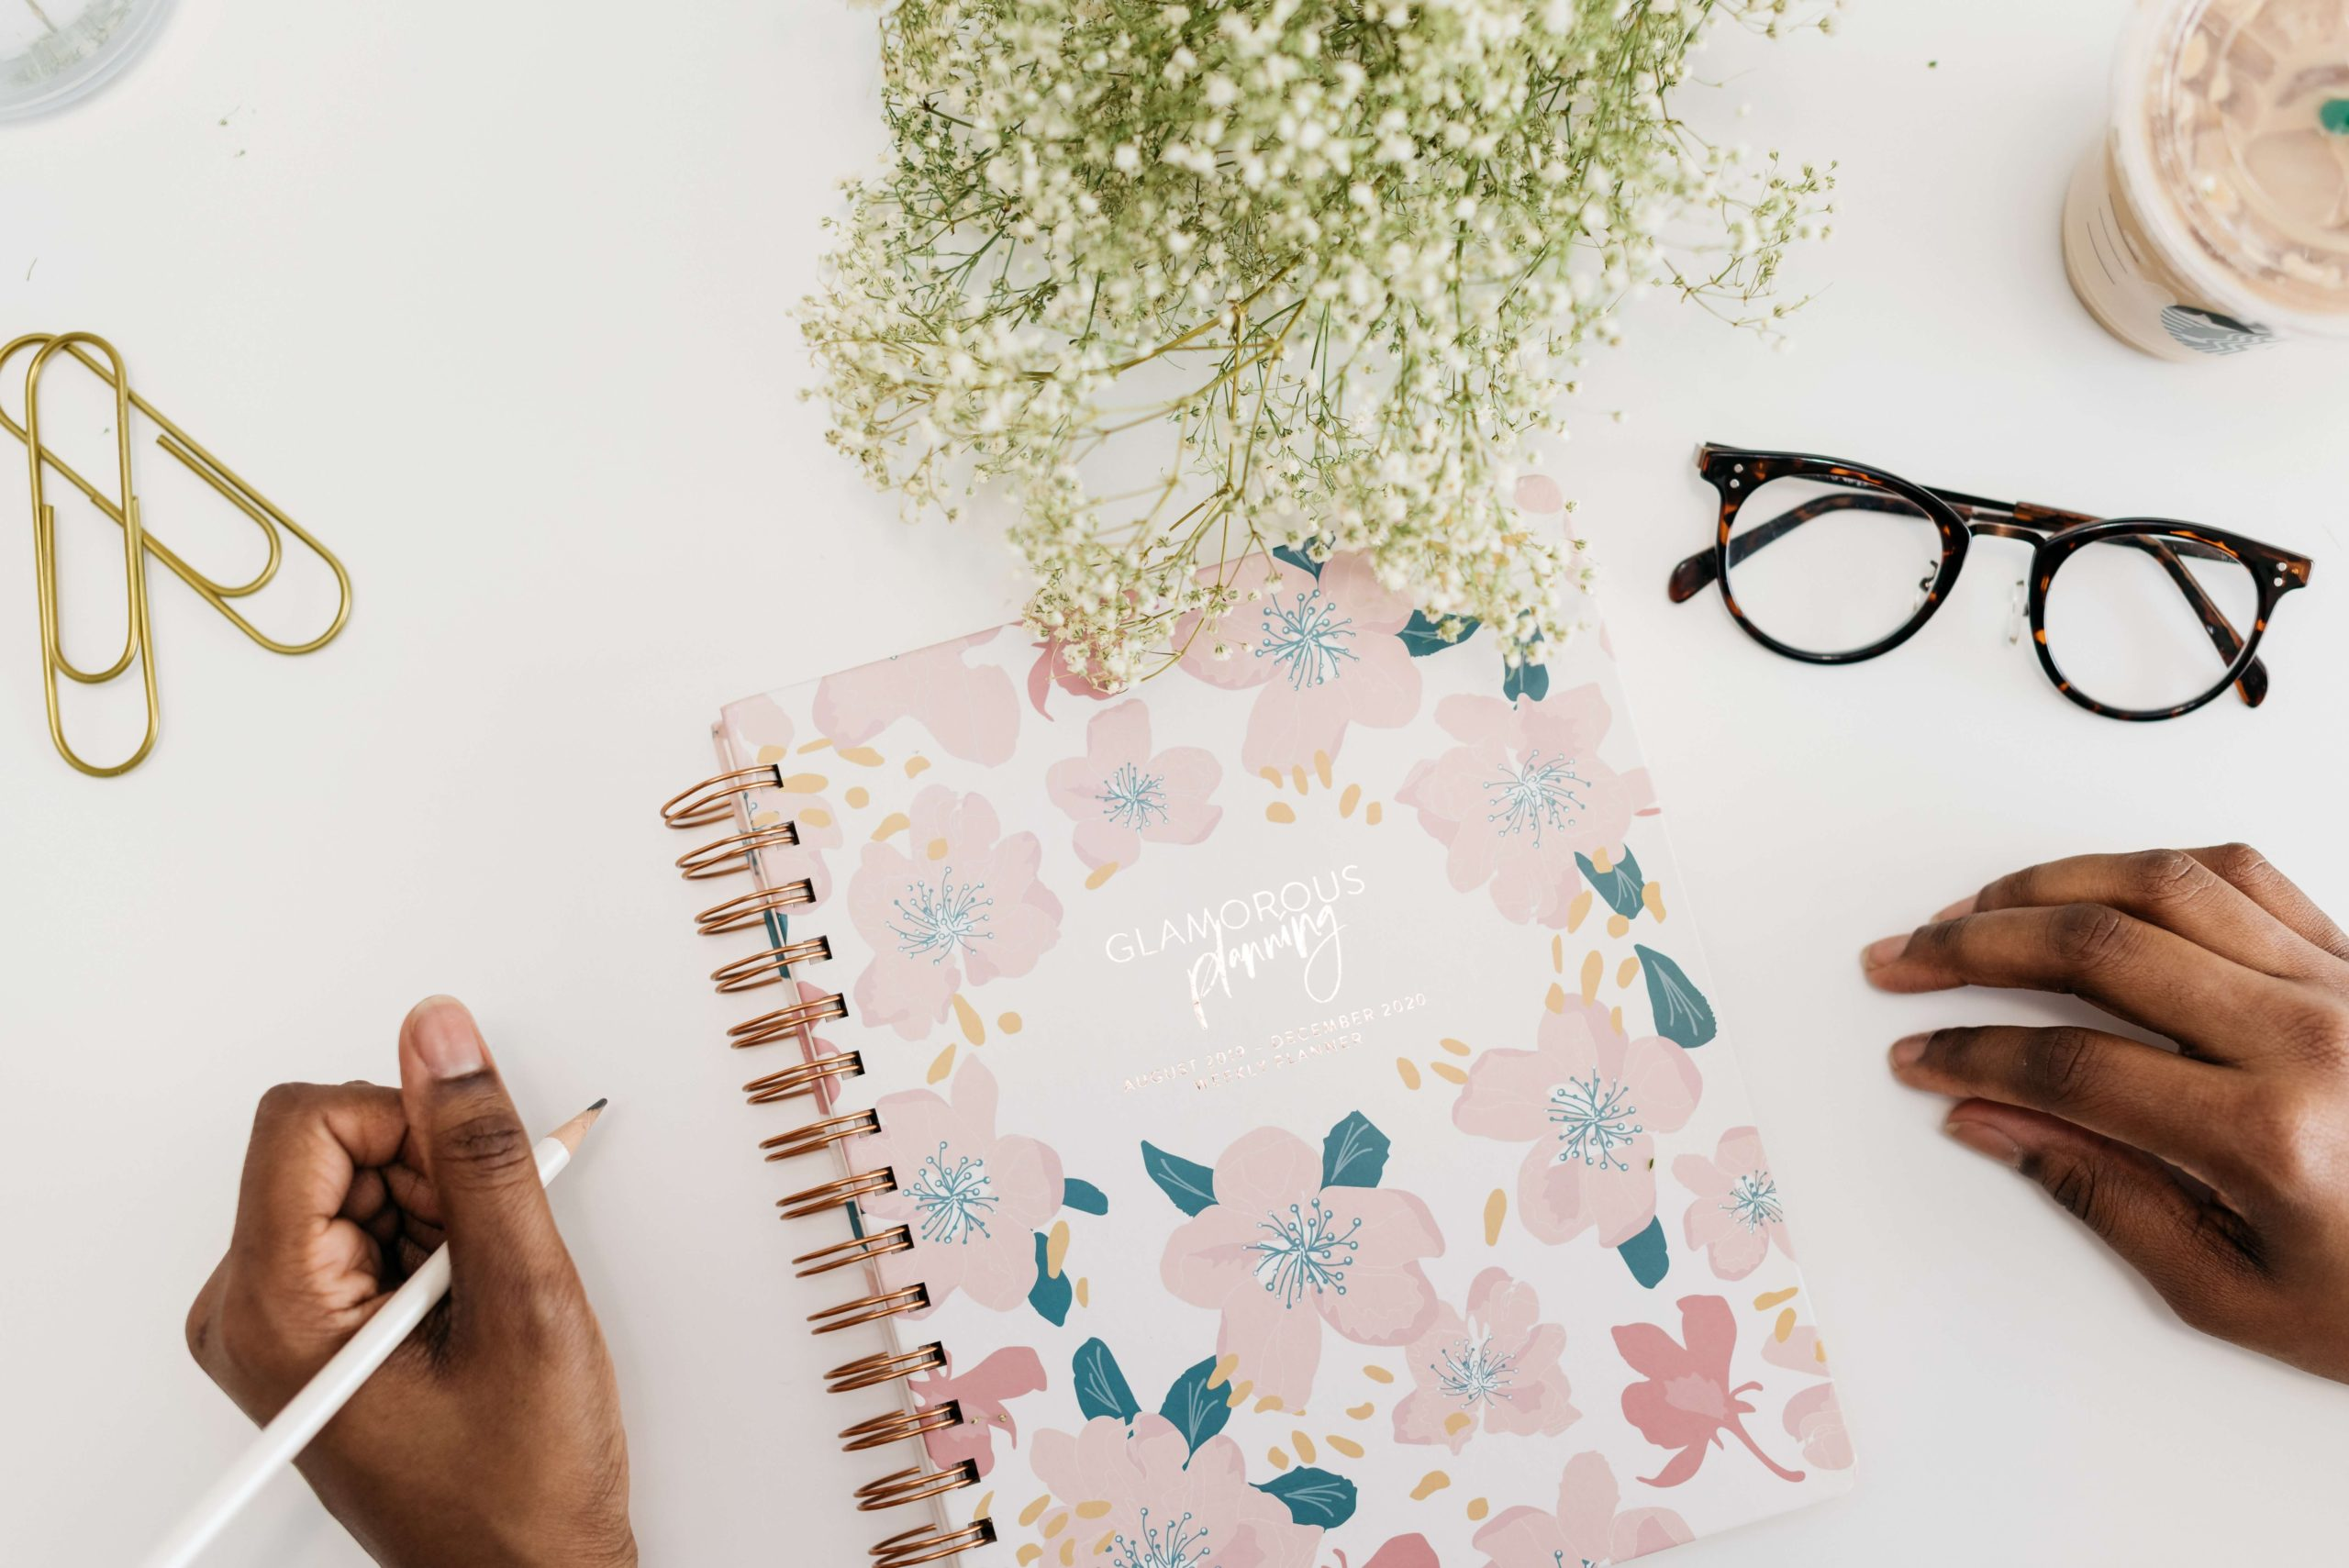 woman holding pen with notebook, flowers, and glasses